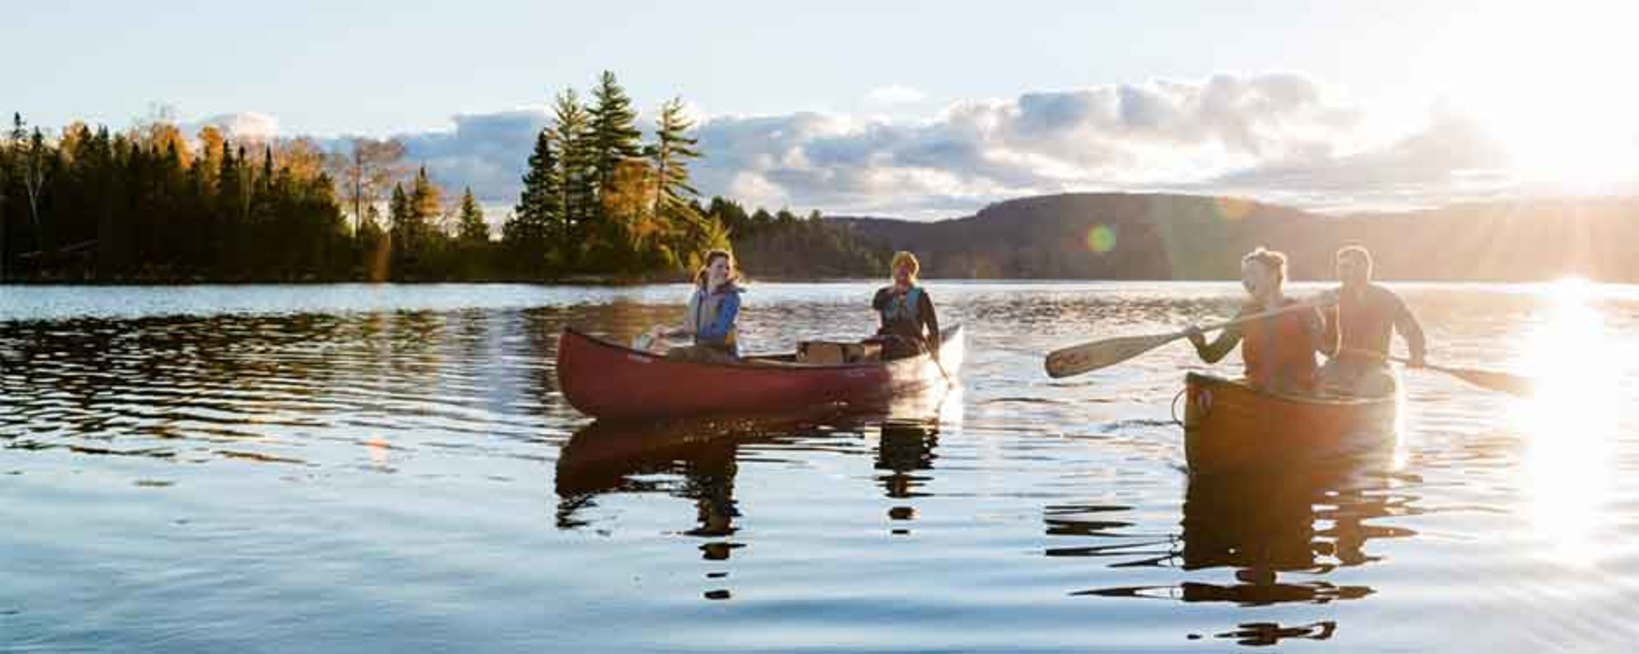 How to get to Algonquin without a car - my long weekend Laskeside Retreat